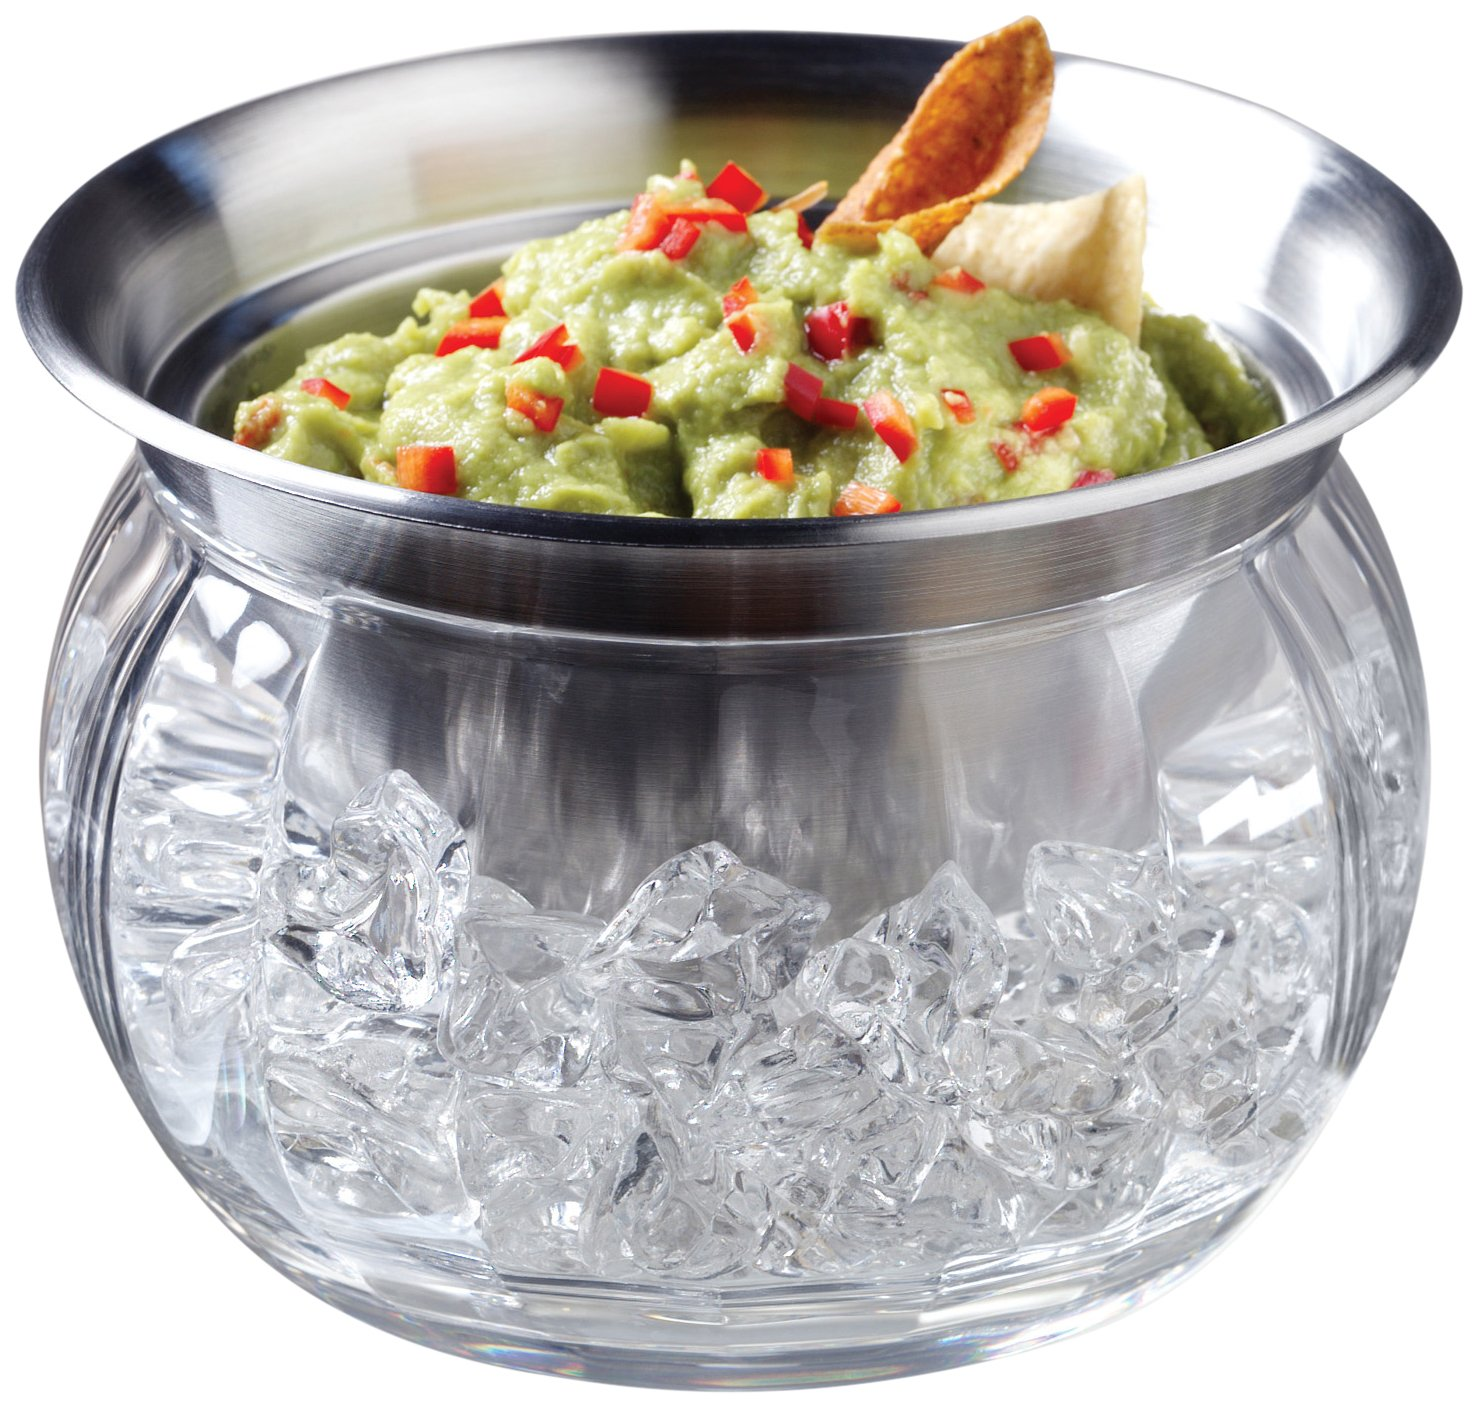 Prodyne ICED Dip-on-Ice Stainless-Steel Serving Bowl, Set of 4